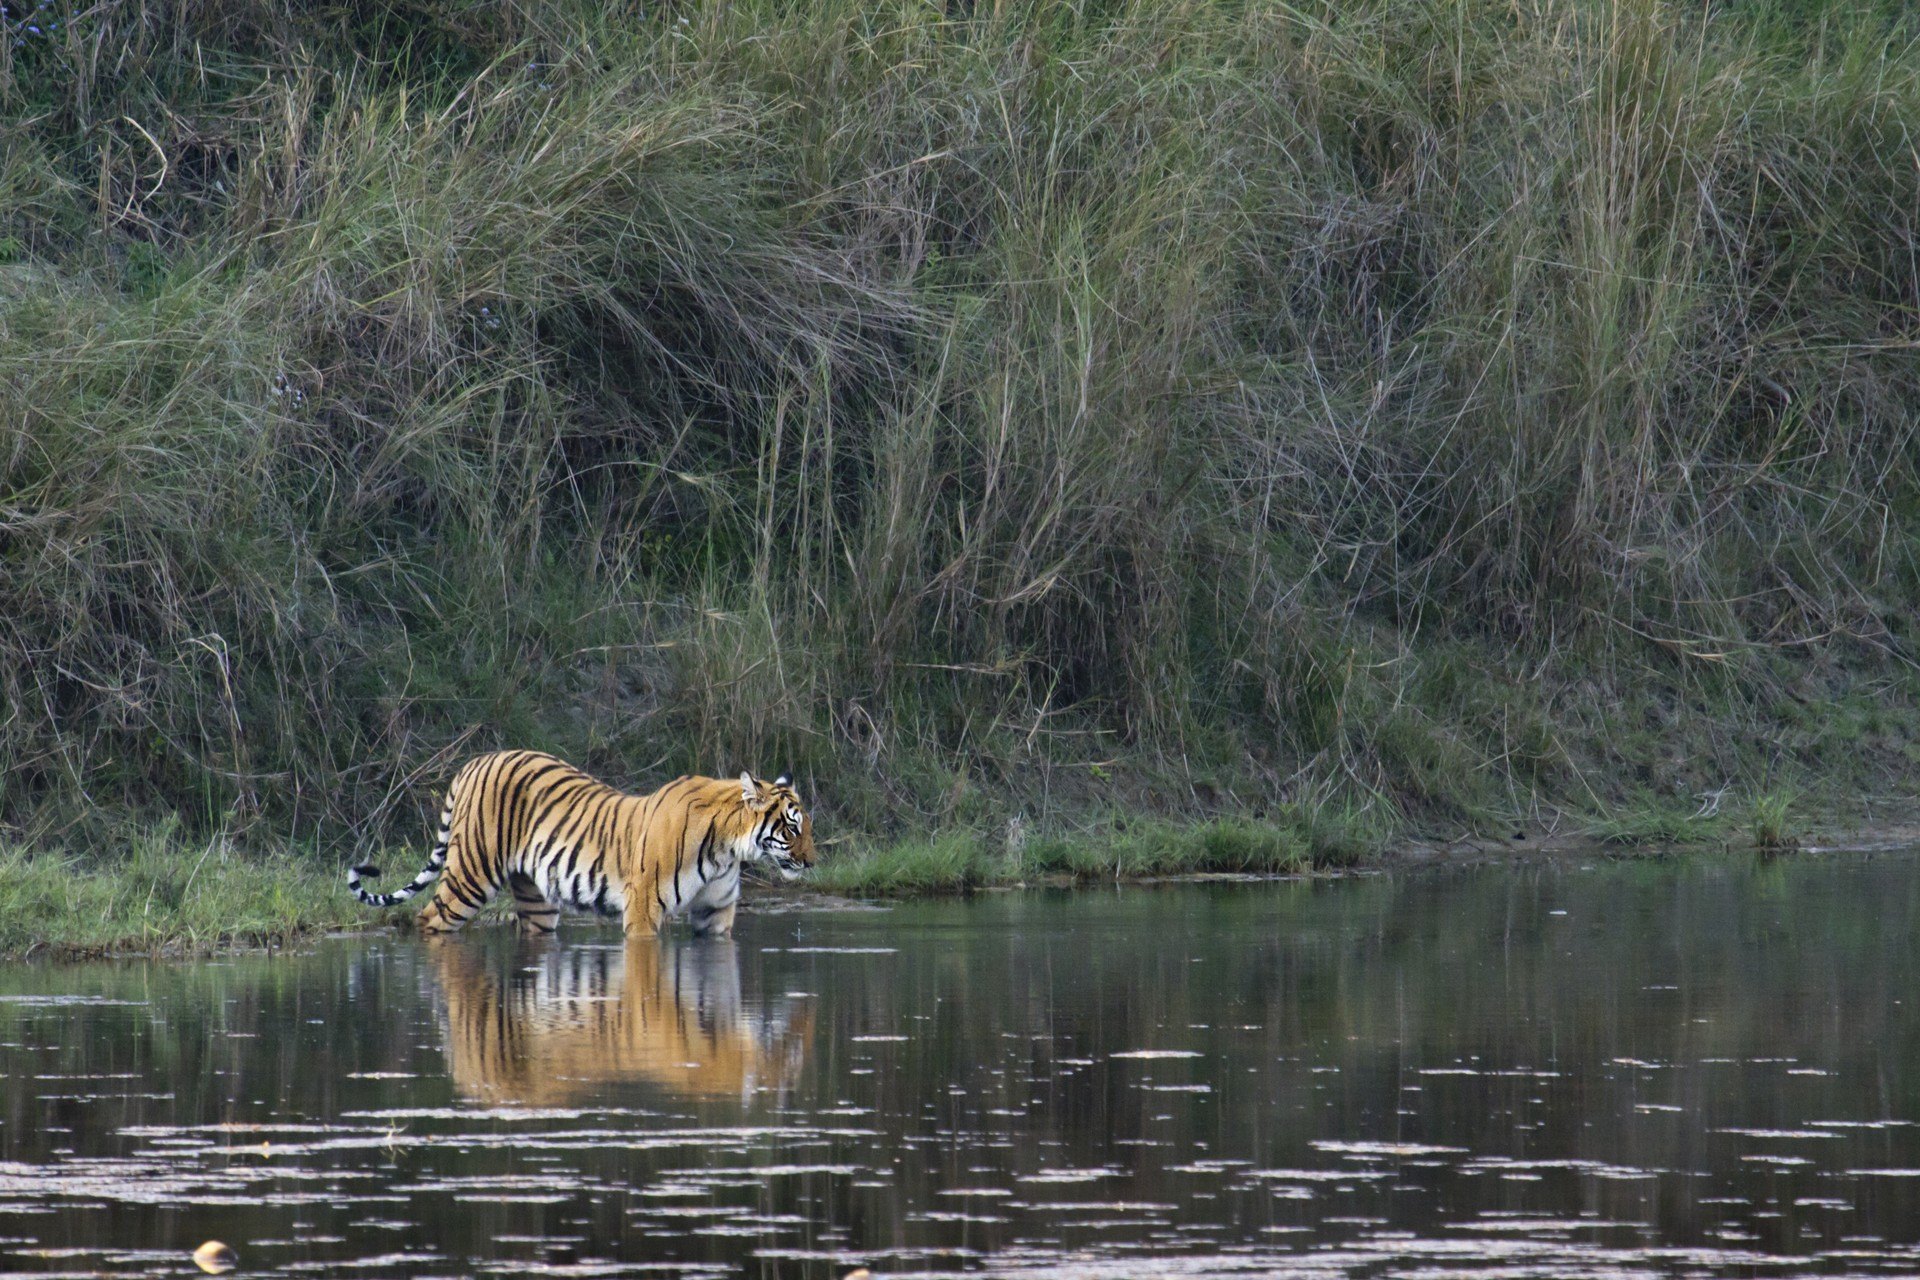 Bengal tiger in Chitwan National Park - Nepal